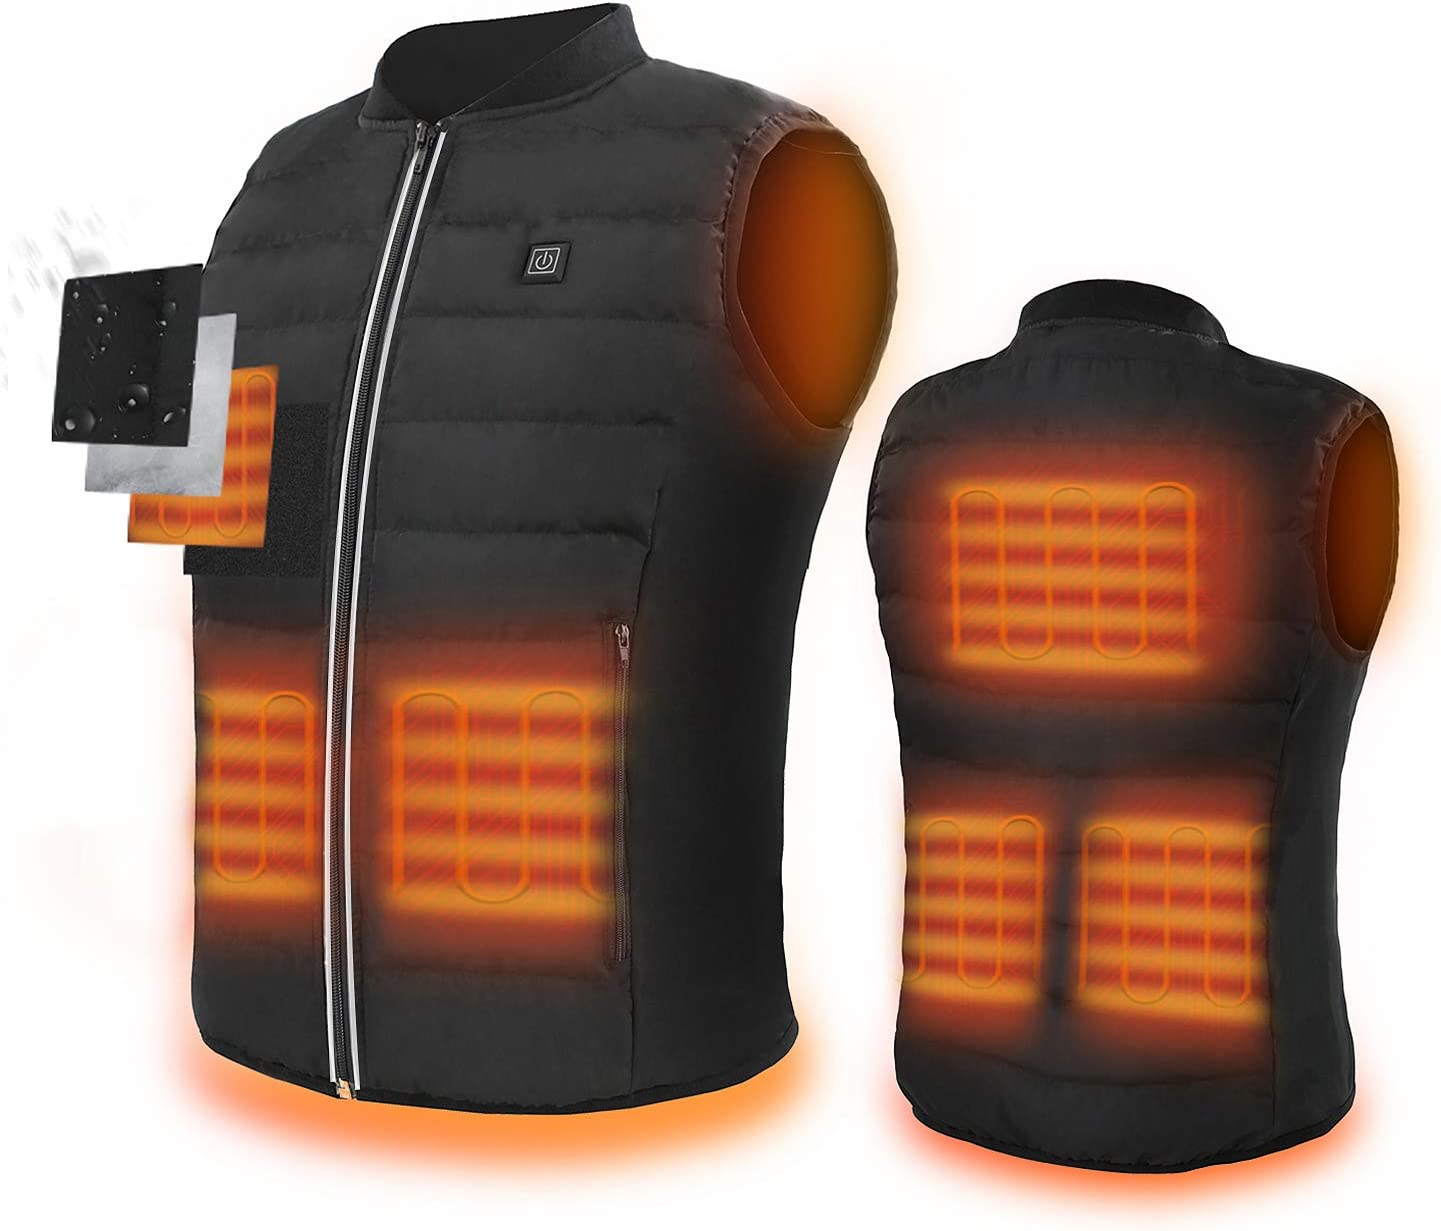 ZLTFashion 5V Heated Vest,USB Charging Electric Lightweight Body Warmer Clothes Washable Heating Pad Apparel Jacket for Men & Women Hiking, Hunting, Motorcycle, Camping (Battery Not Included)